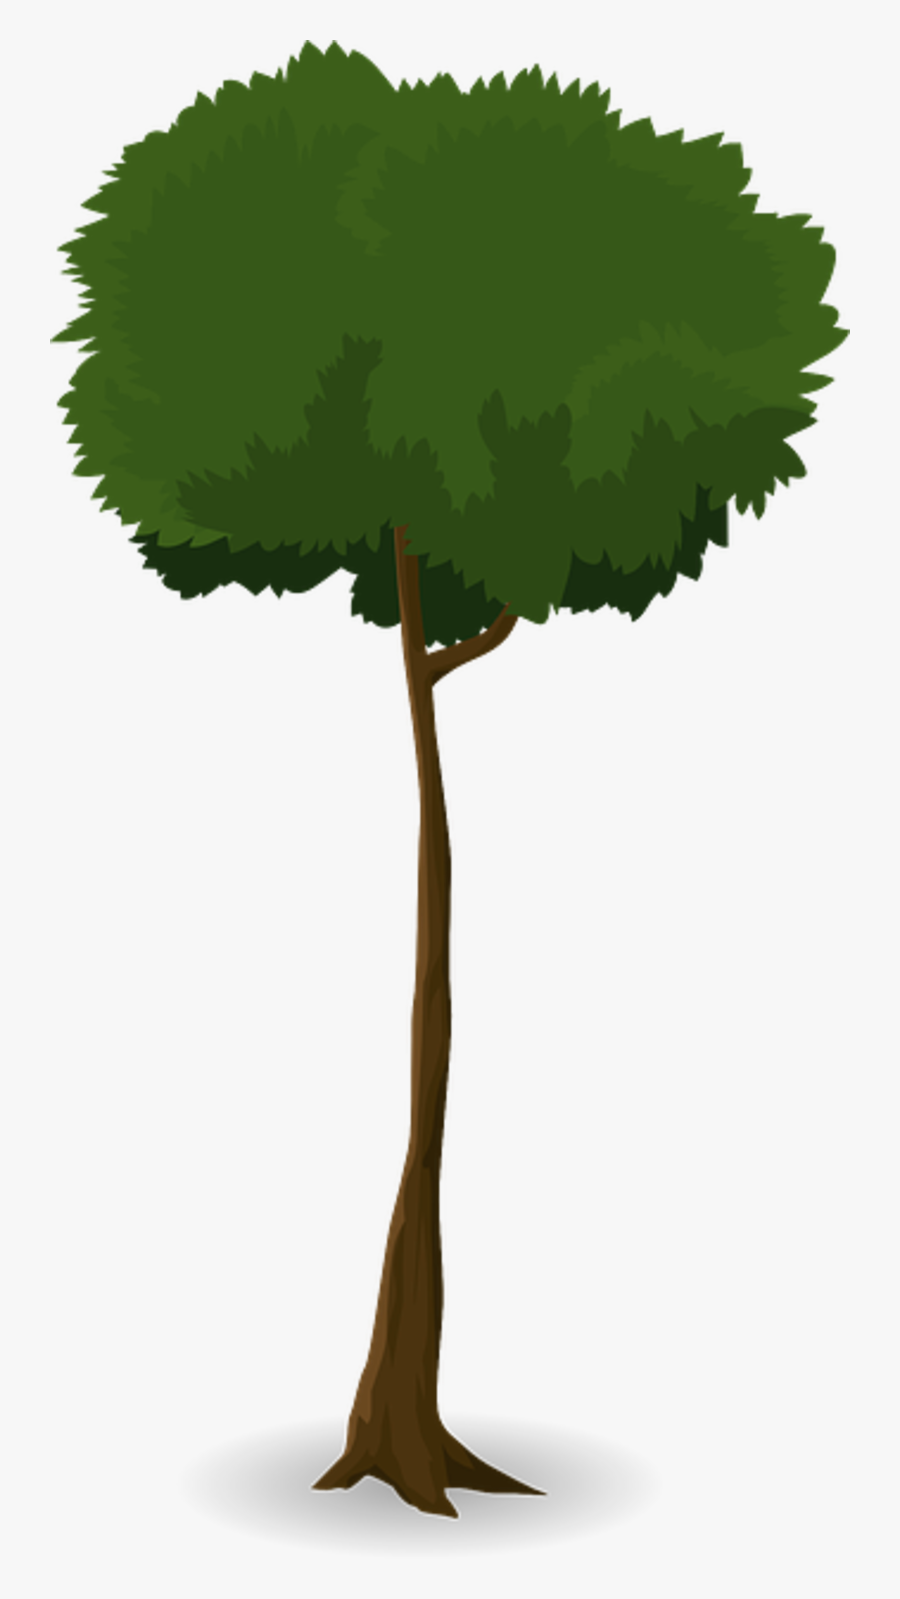 Tree Trunk Nature Leaves Branches Graphic Organic - Trunk, Transparent Clipart